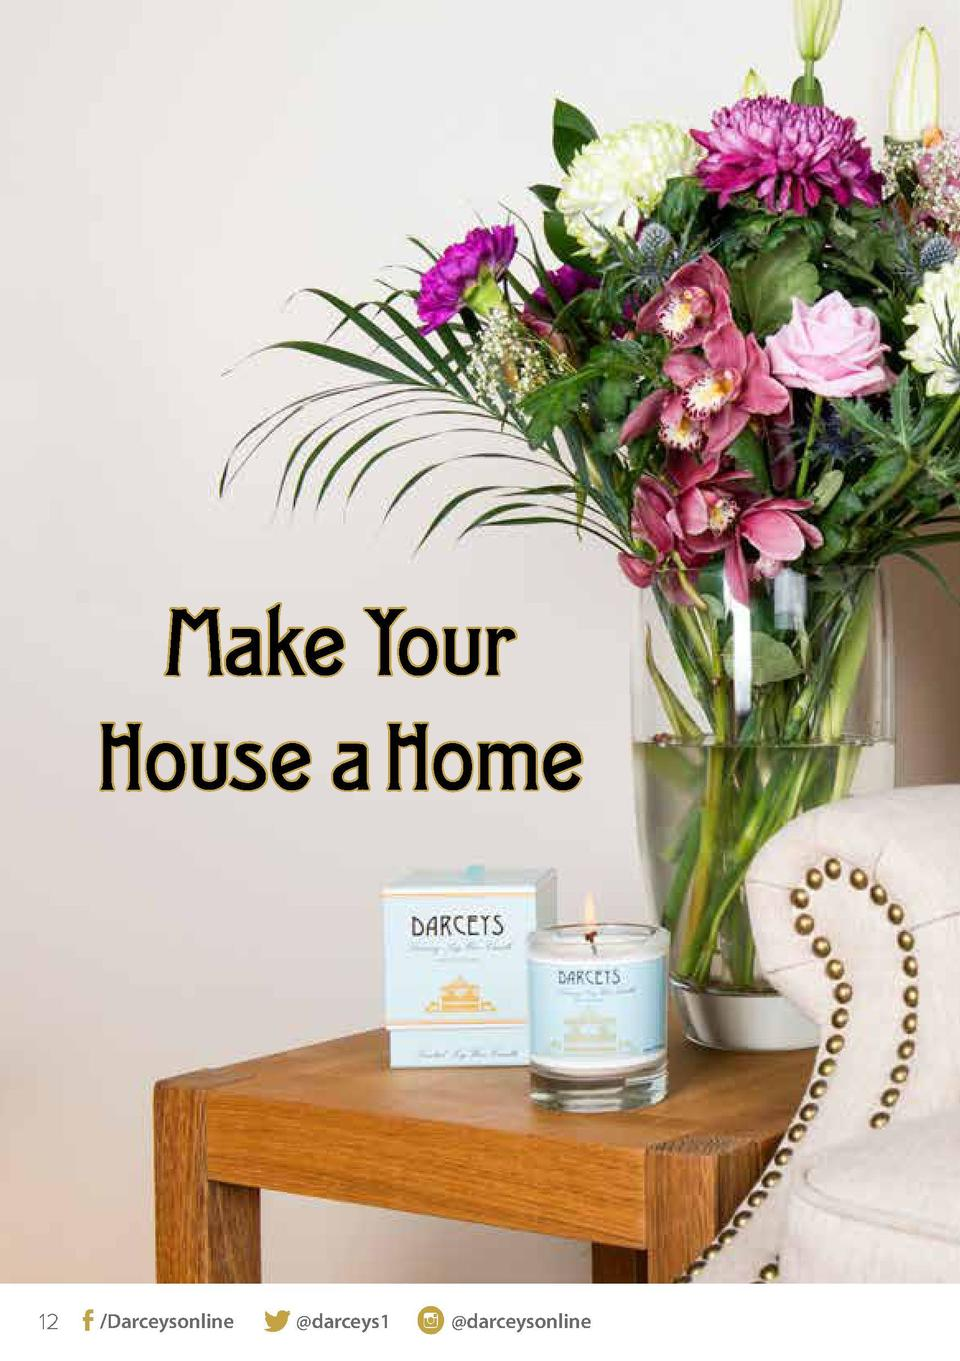 Make Your House a Home  12   Darceysonline   darceys1   darceysonline  For more information visit  www.darceyscandles.co.u...